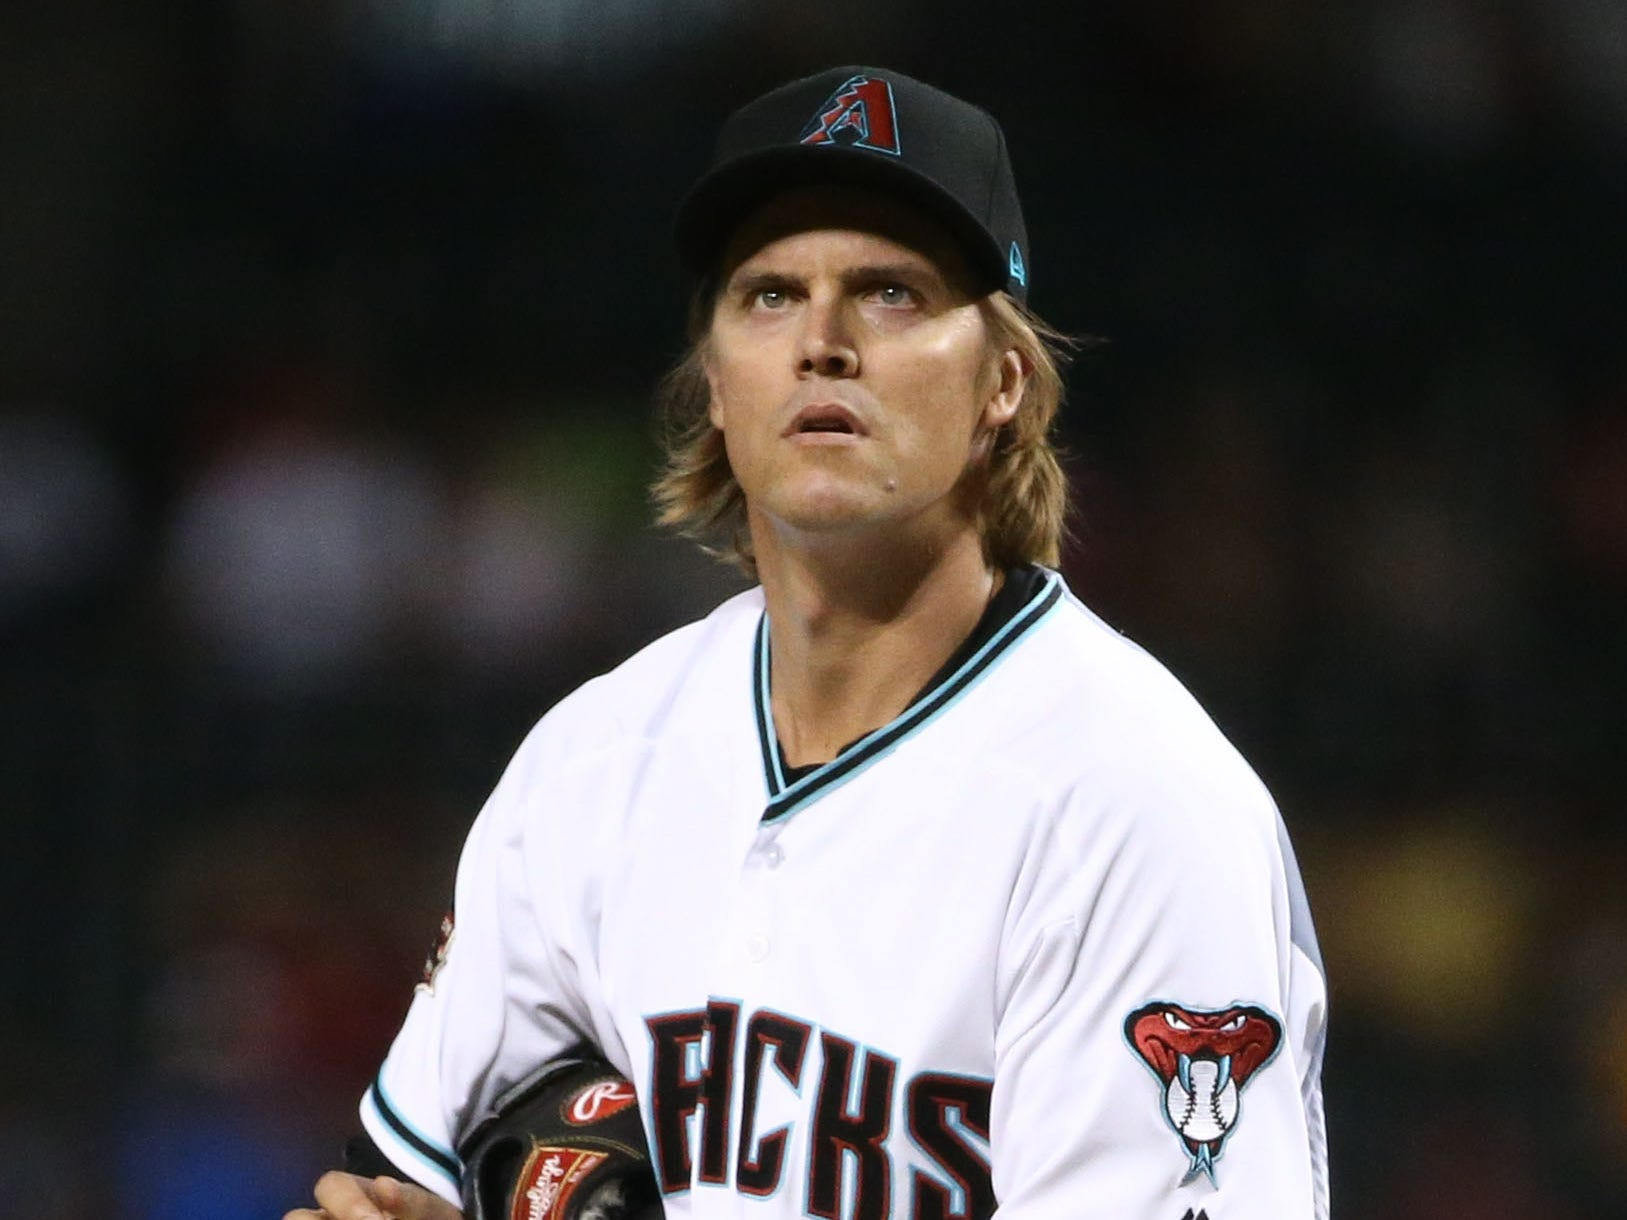 Arizona Diamondbacks 	starting pitcher Zack Greinke reacts after the Atlanta Braves scored two runs in the first inning on Sep. 6, 2018, at Chase Field in Phoenix, Ariz.